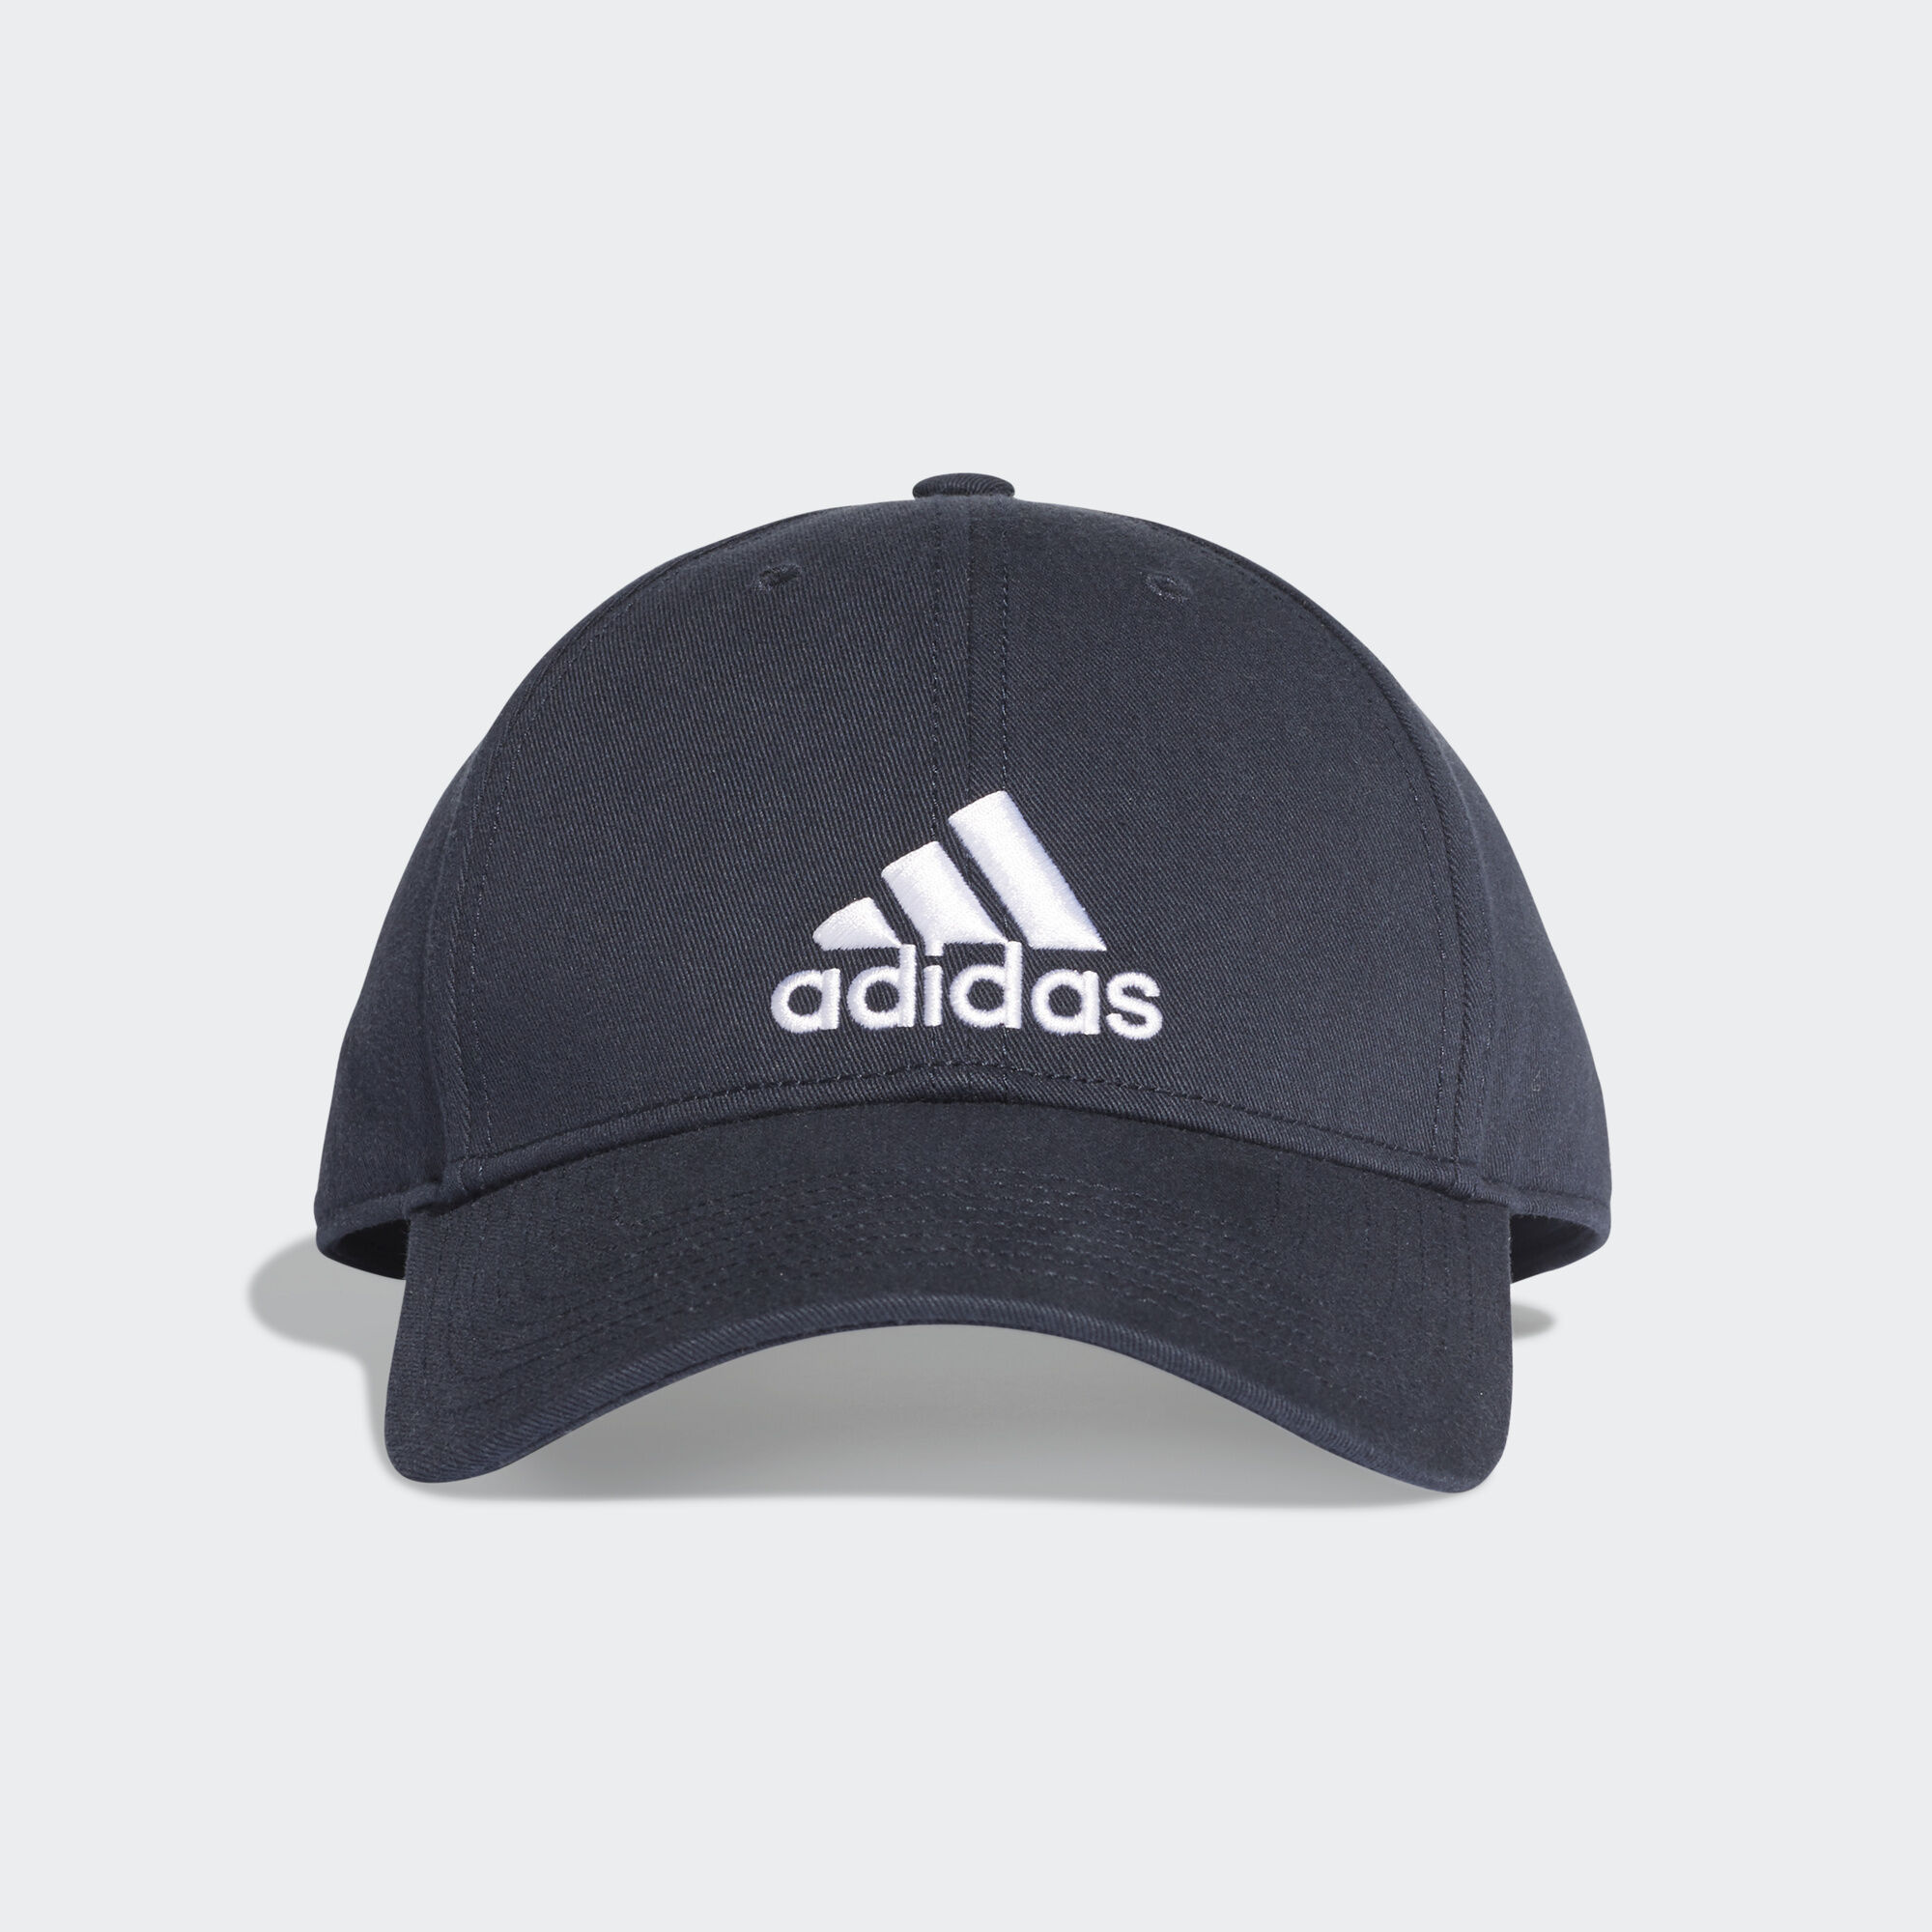 adidas - Classic Six-Panel Cap Legend Ink   Legend Ink   White DT8563 7534ea680e8